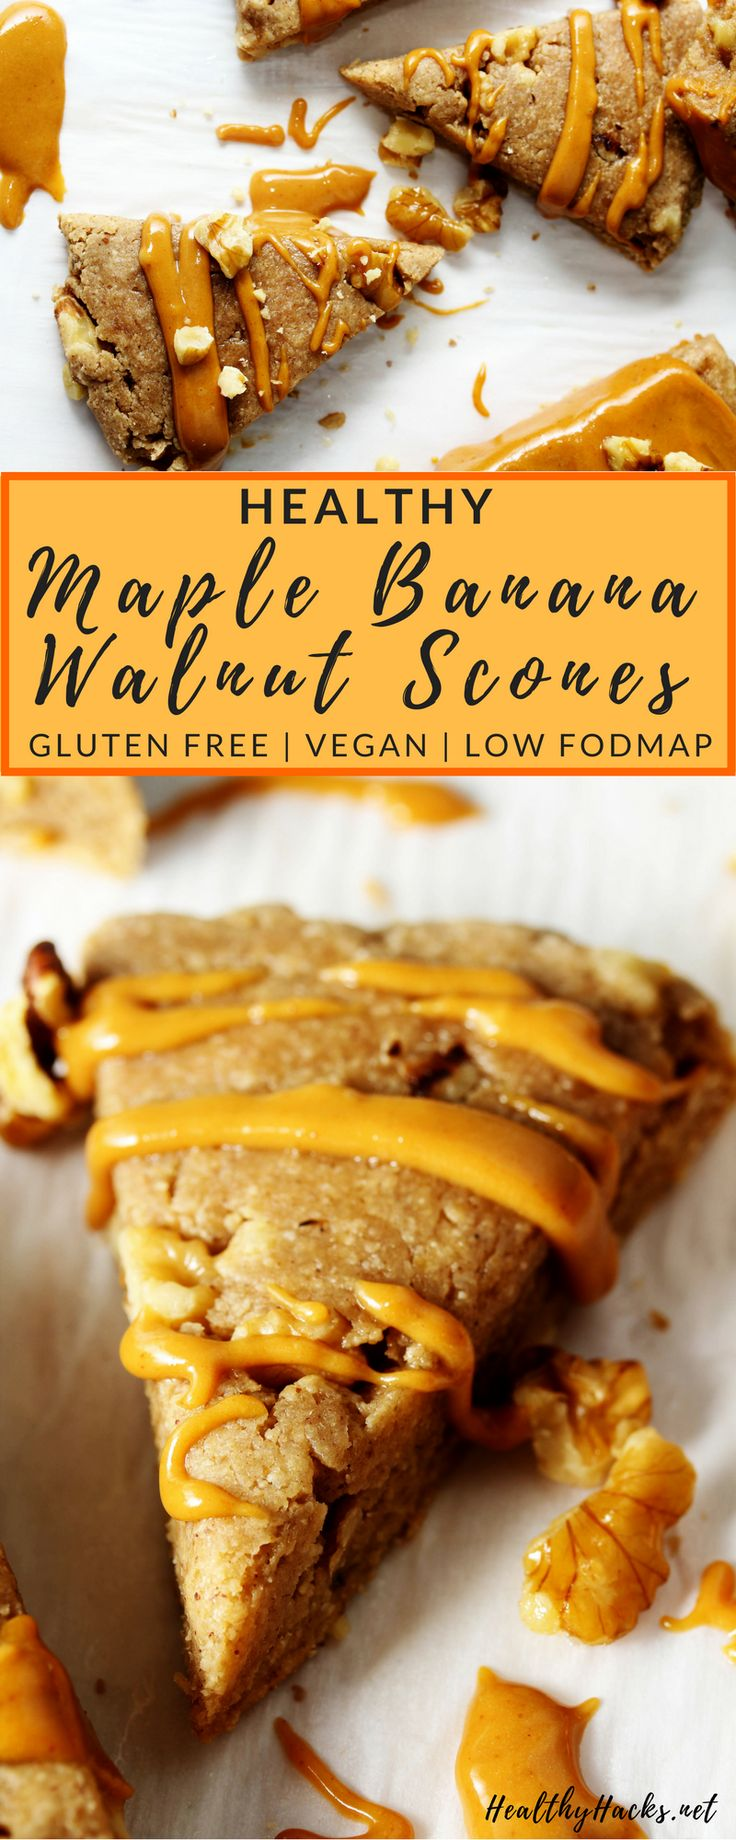 Skip the Starbucks line and make these easy healthy Maple Banana Walnut Scones a…